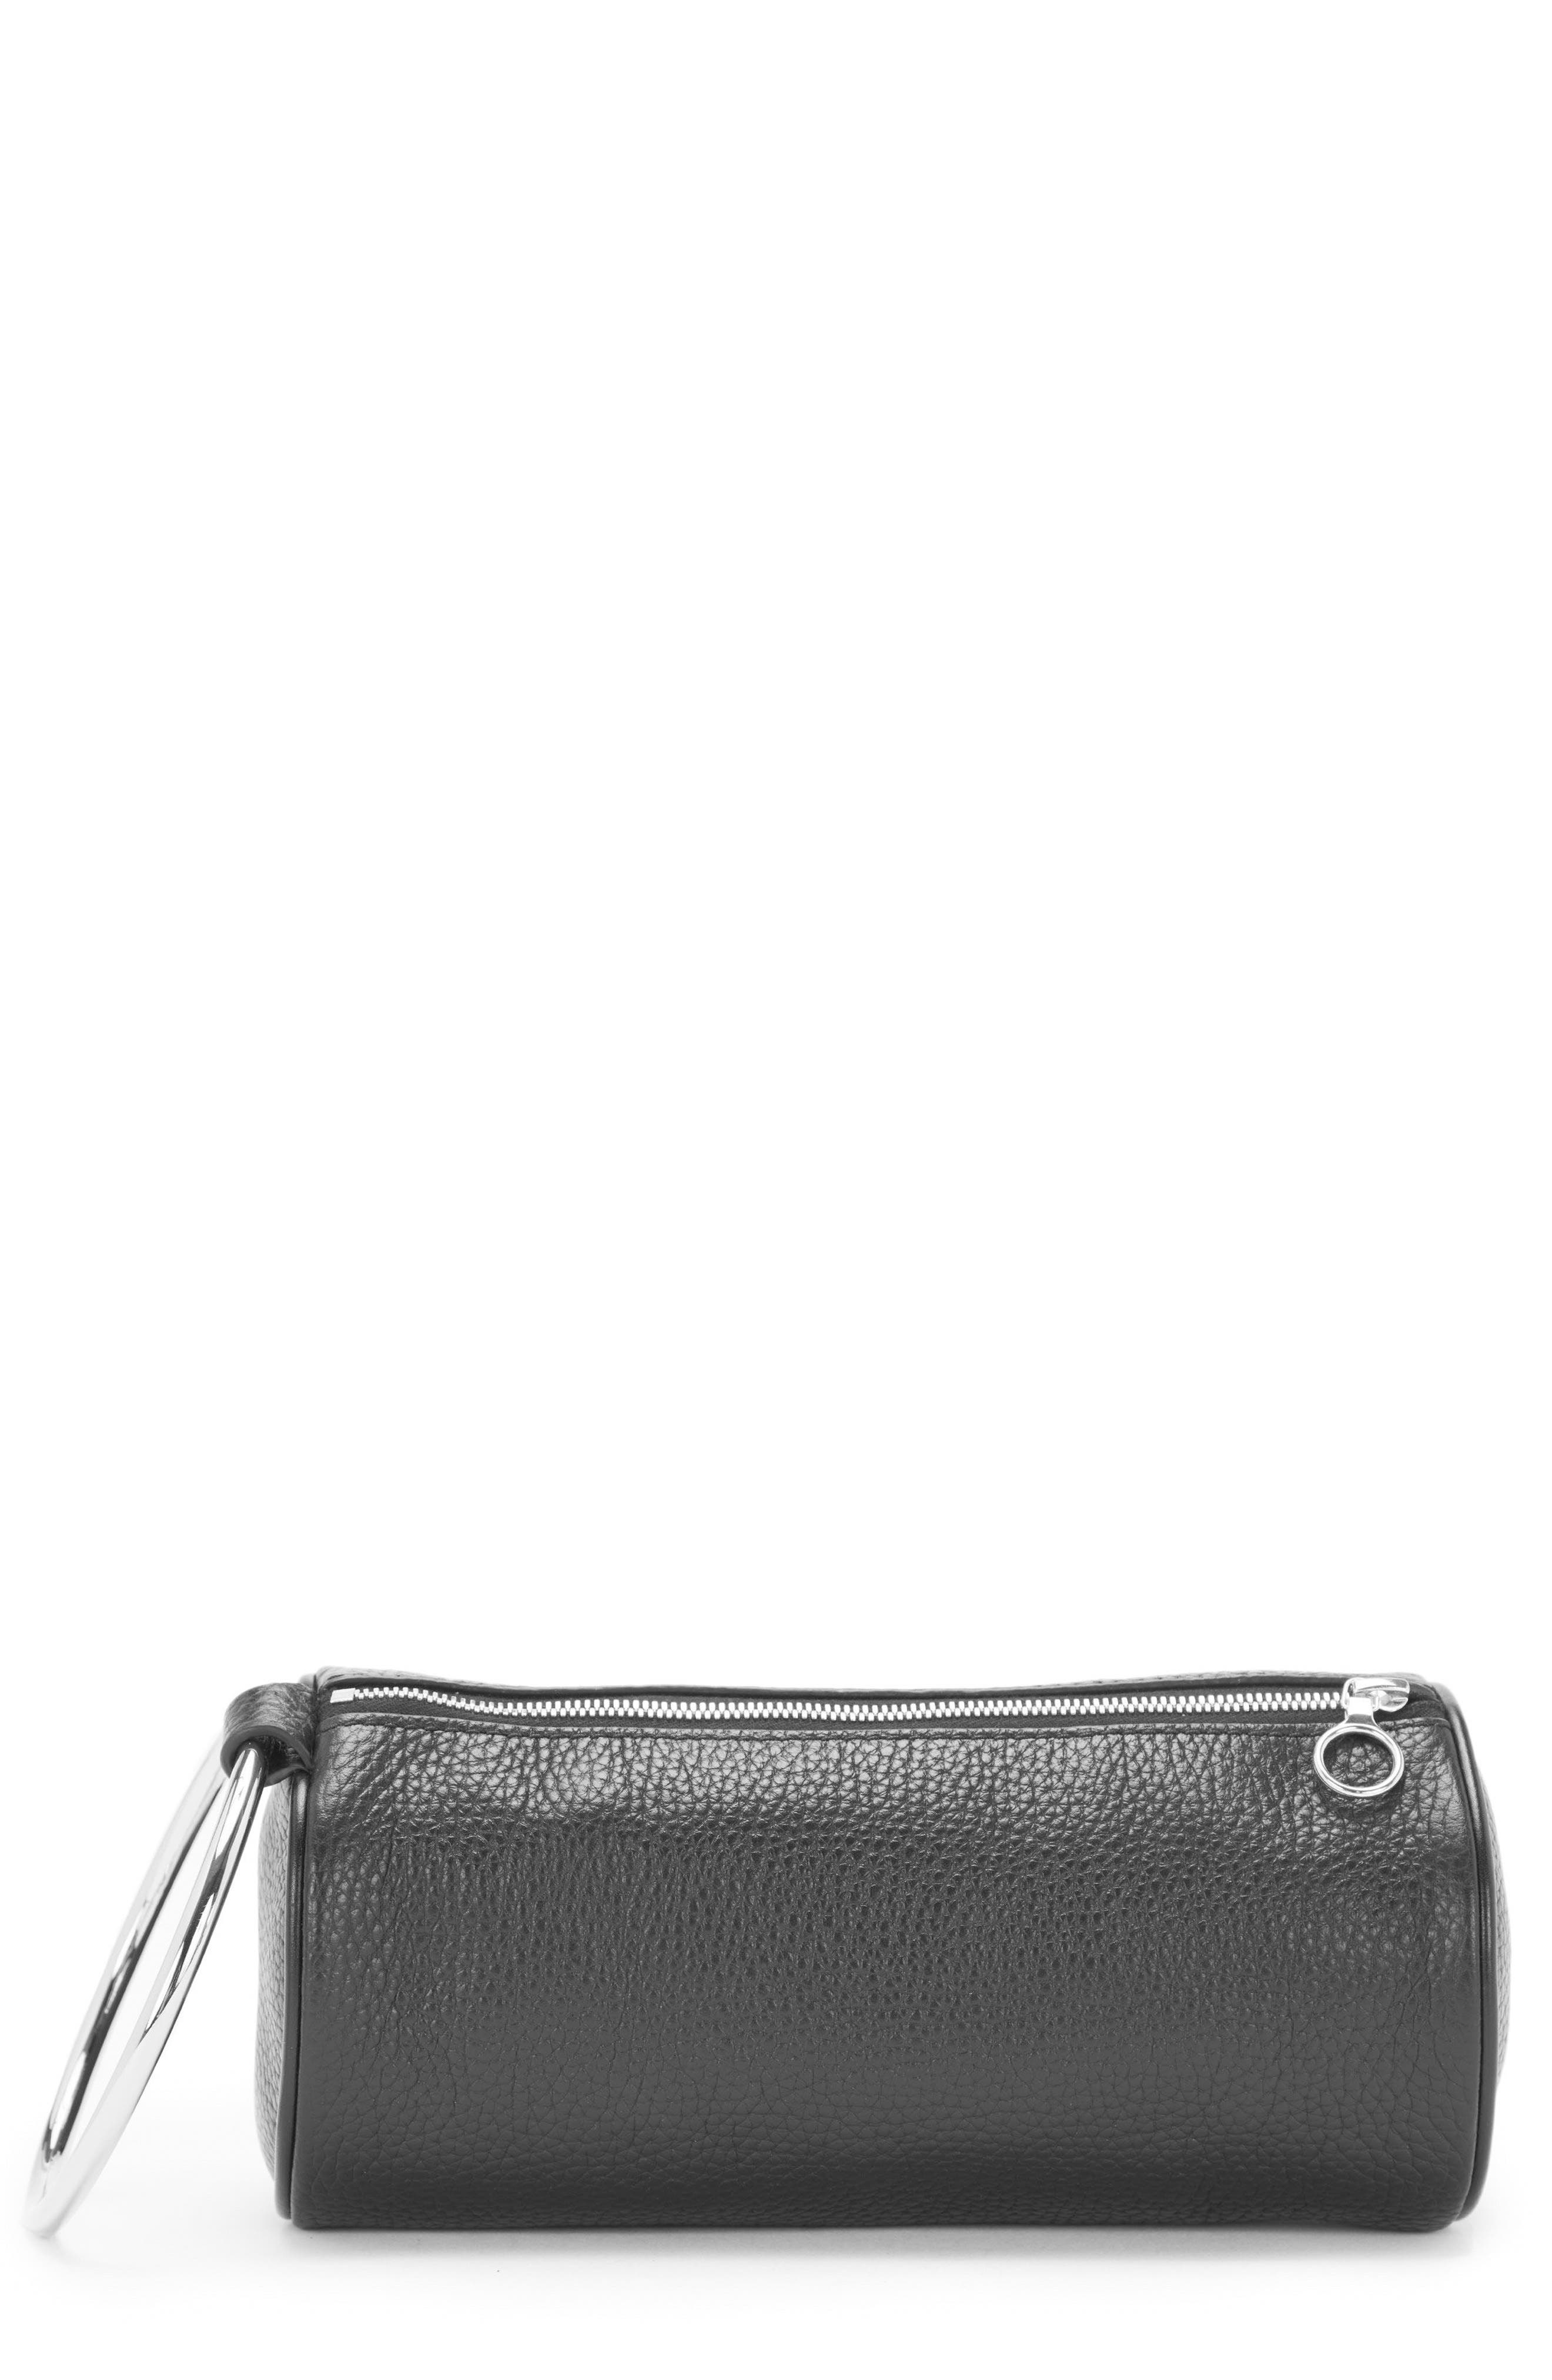 KARA Pebbled Leather Duffel Wristlet Clutch